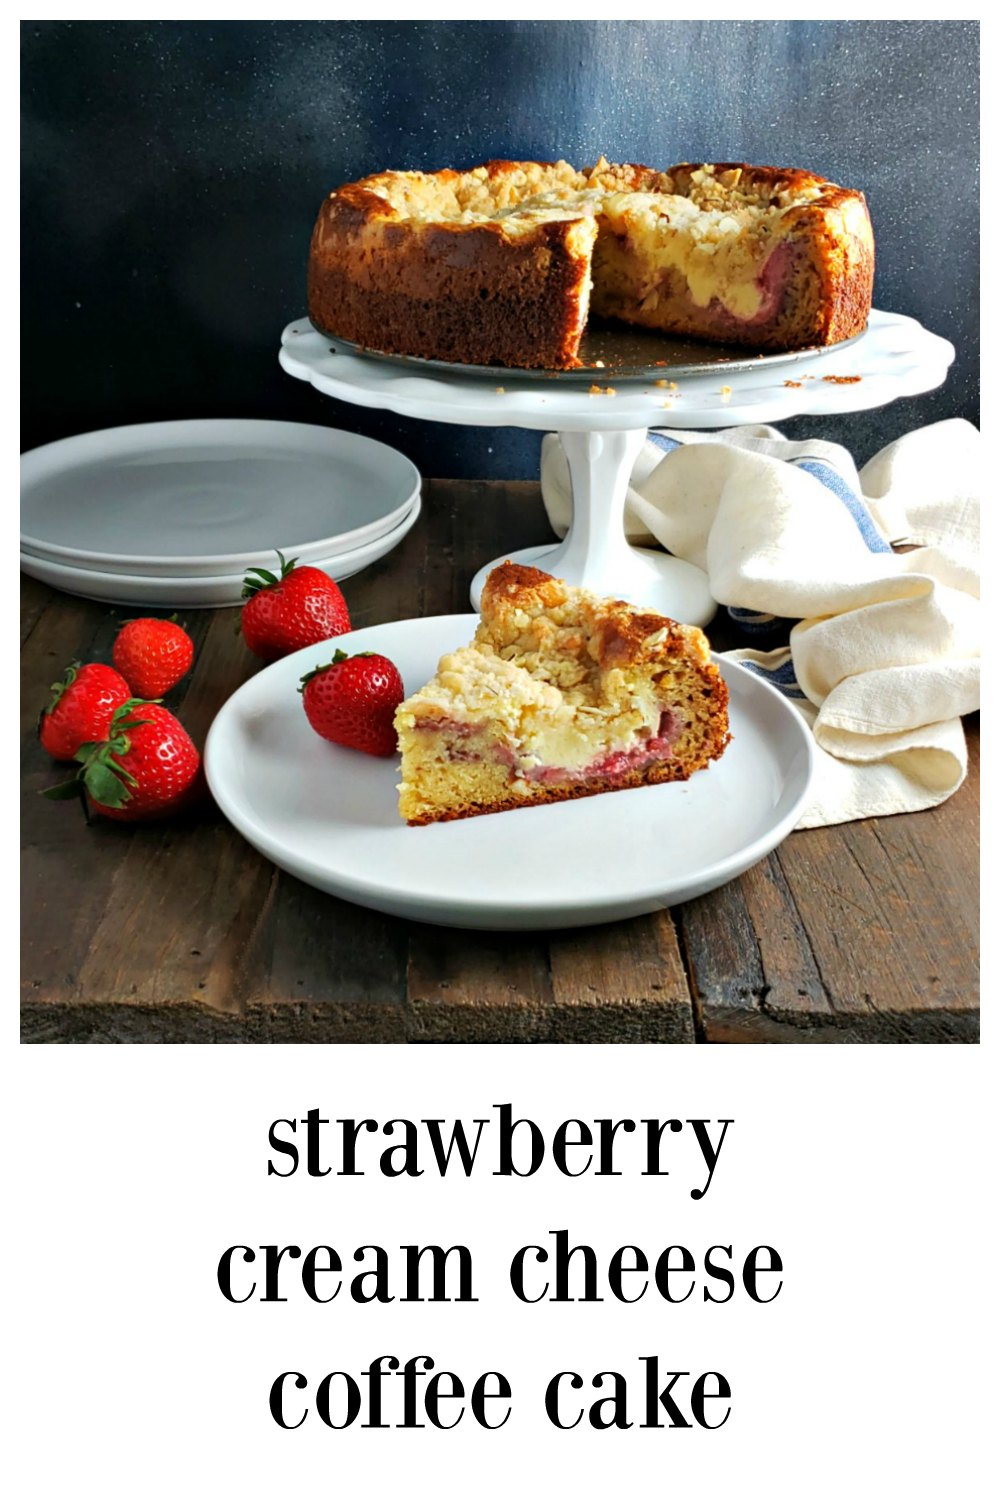 Strawberry Cream Cheese Coffee Cake -Layer upon layer of delish. Coffee Cake with a strawberry layer peeping under cheesecake & topped with streusel. #CoffeeCake #StrawberryCreamCheeseCoffeCake #MothersDay #Brunch #StrawberryRecipe #SpringBrunchRecipe #StrawberryCoffeeCake